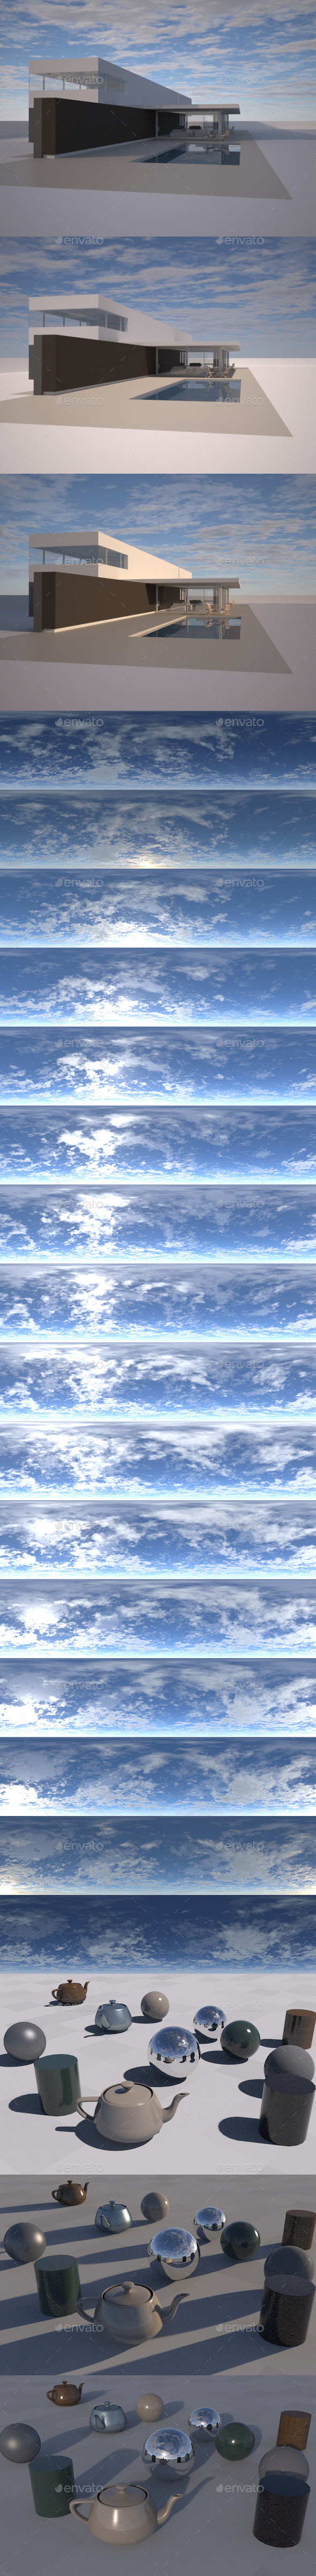 Sky with Clouds Pack - Timelapse 16 EXR/HDR pics - 3DOcean Item for Sale